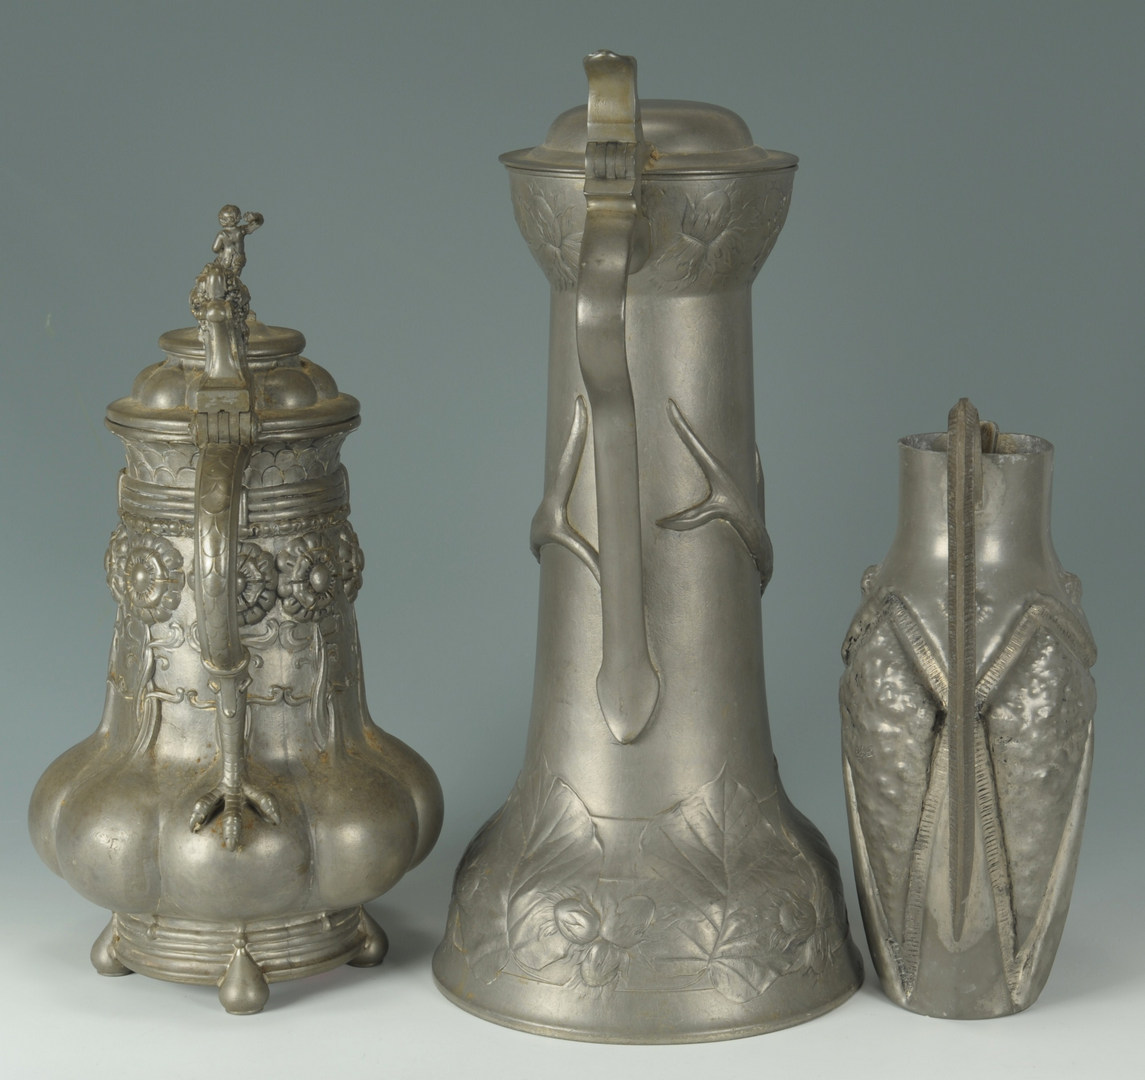 Lot 523: Three Art Nouveau Pewter Pitchers